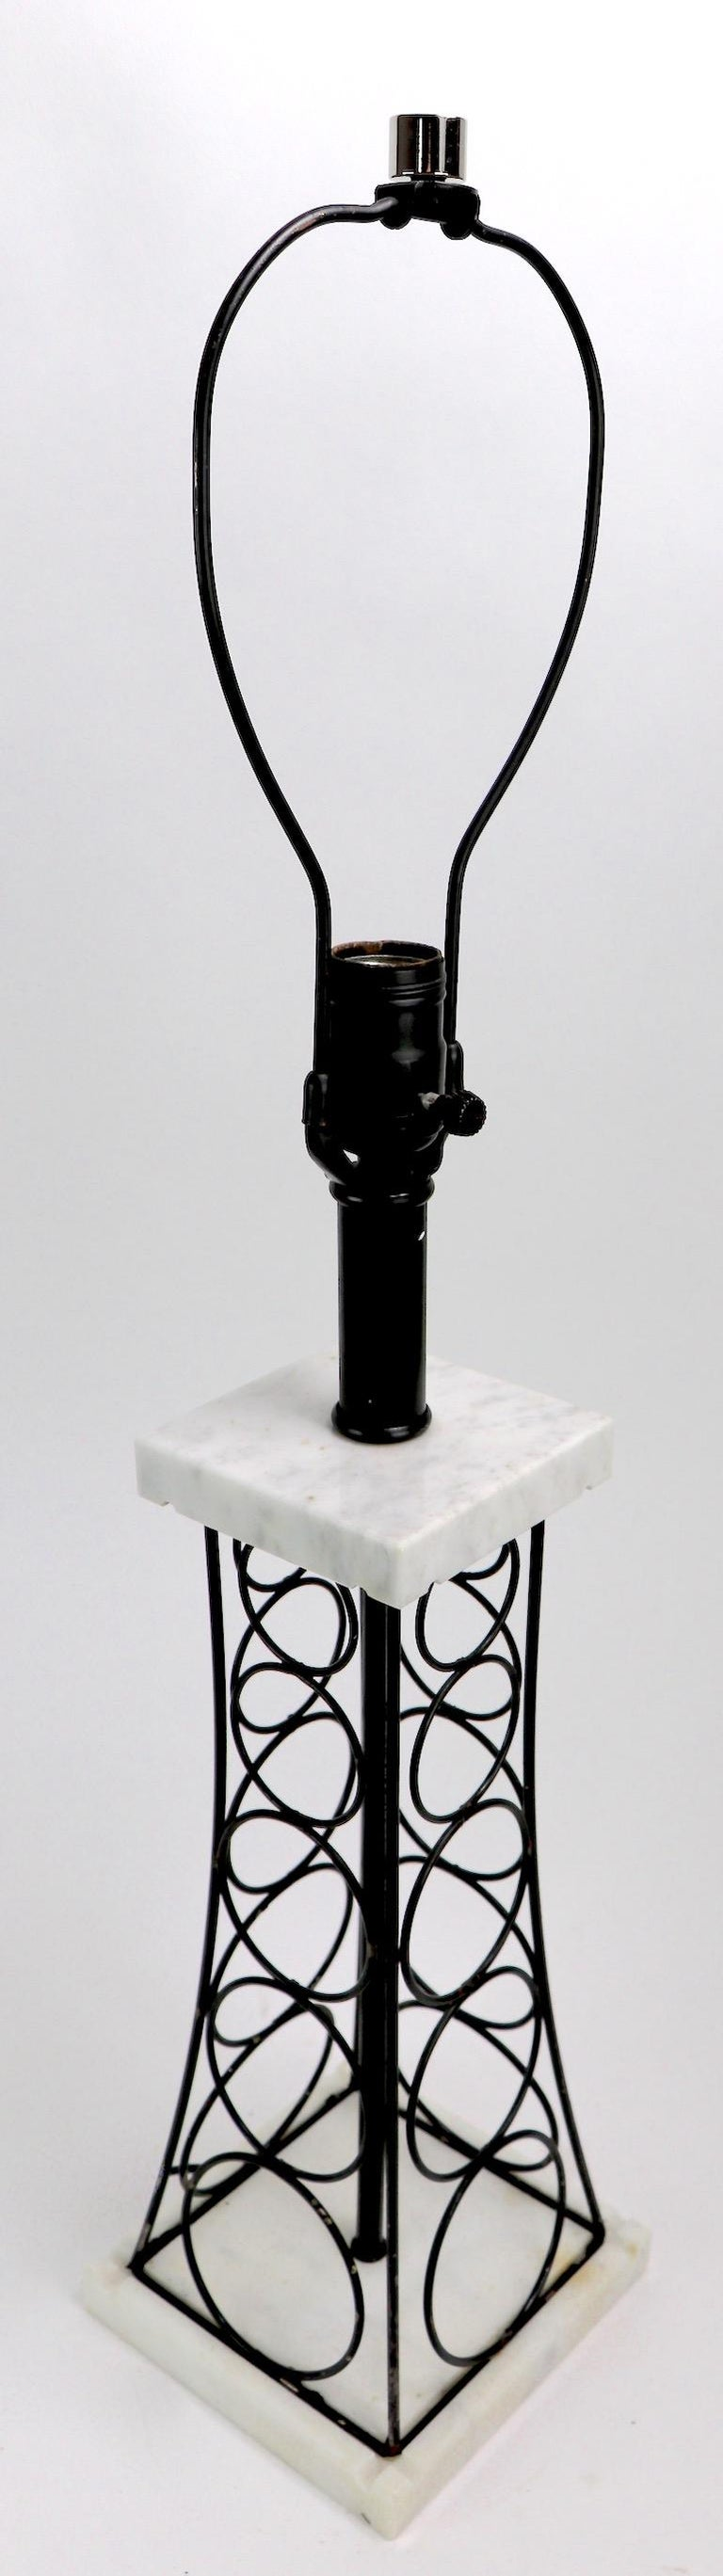 Wrought Iron and Marble Eiffel Tower Oil Derrick Form Table Lamp After Weinberg For Sale 3